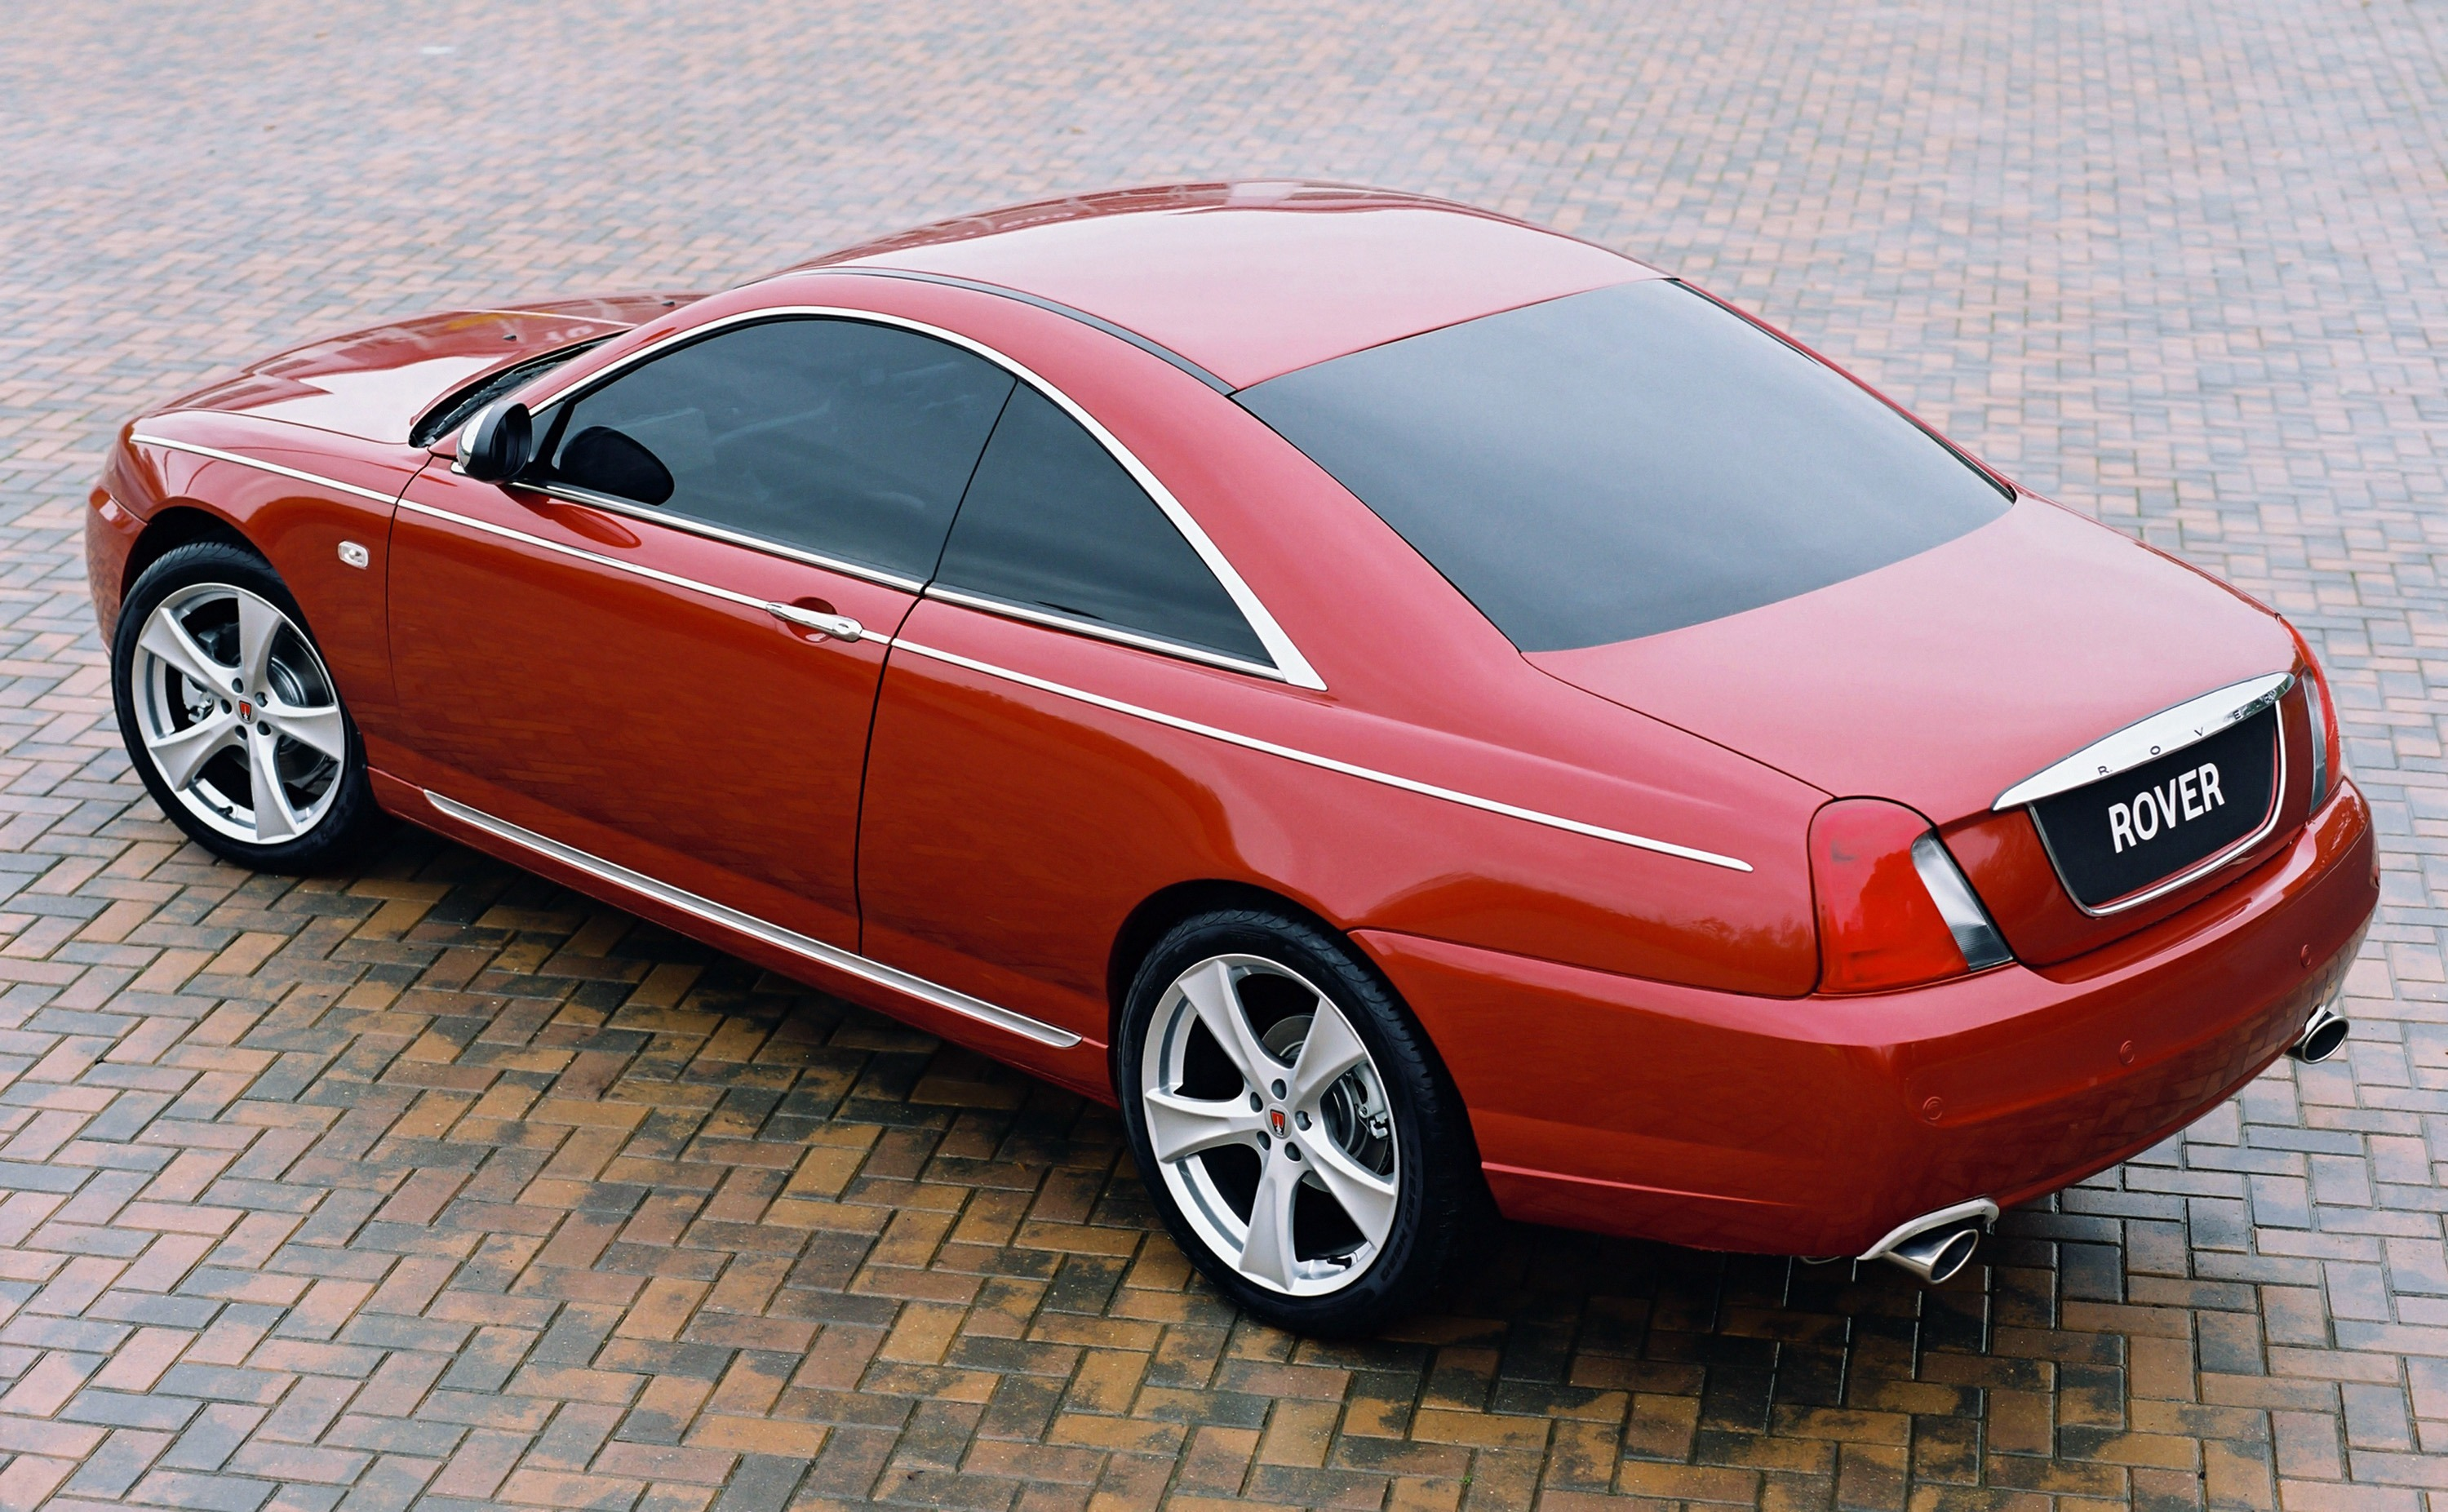 Rover 75 Coupe Concept (2004) – Old Concept Cars